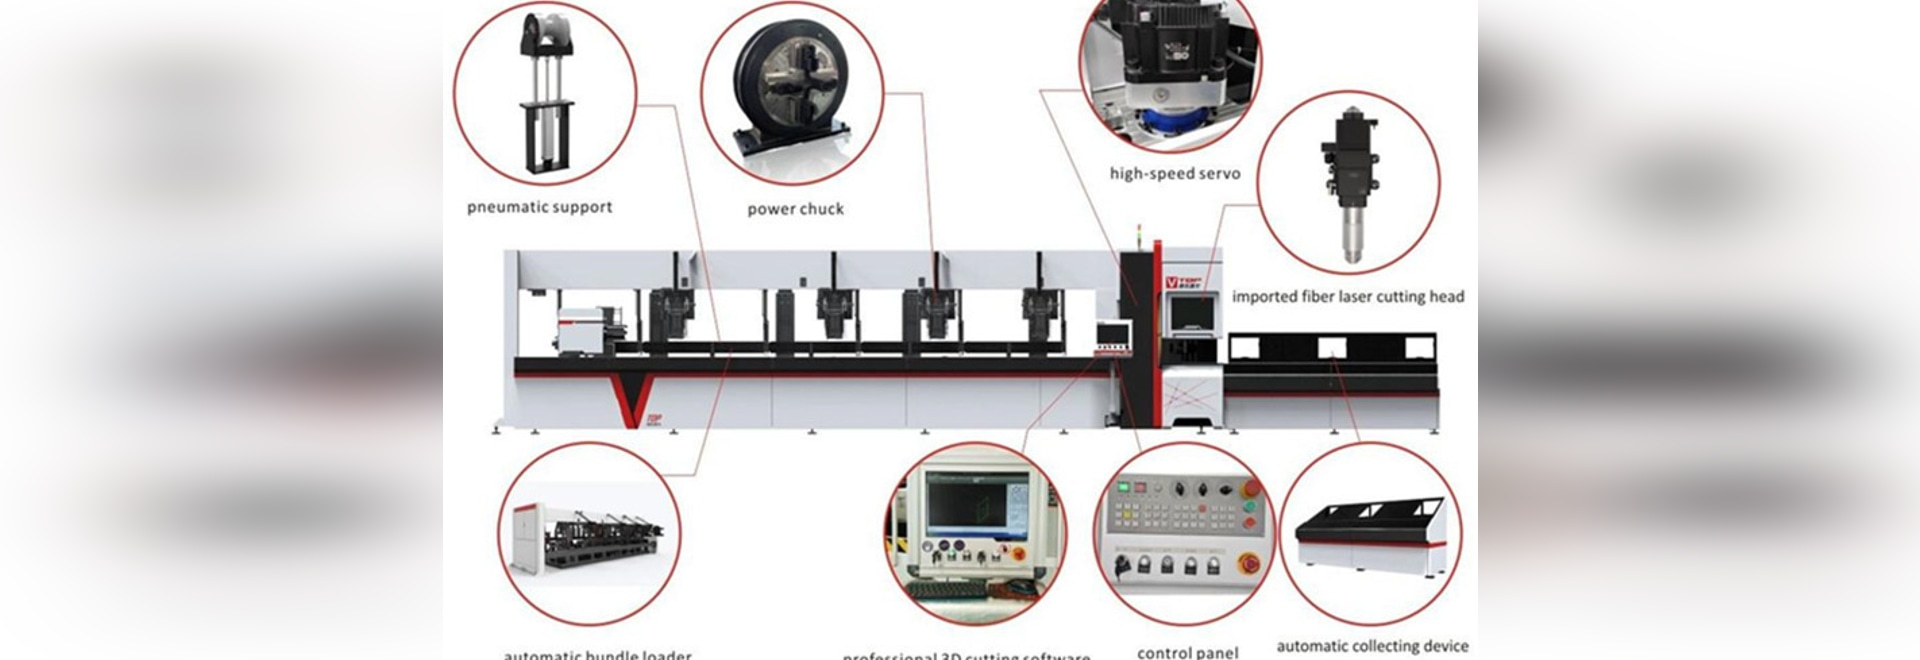 3000w Stainless Steel / Carbon Steel Tube Fiber Laser Cutting Machine With Automatic Bundle Loader